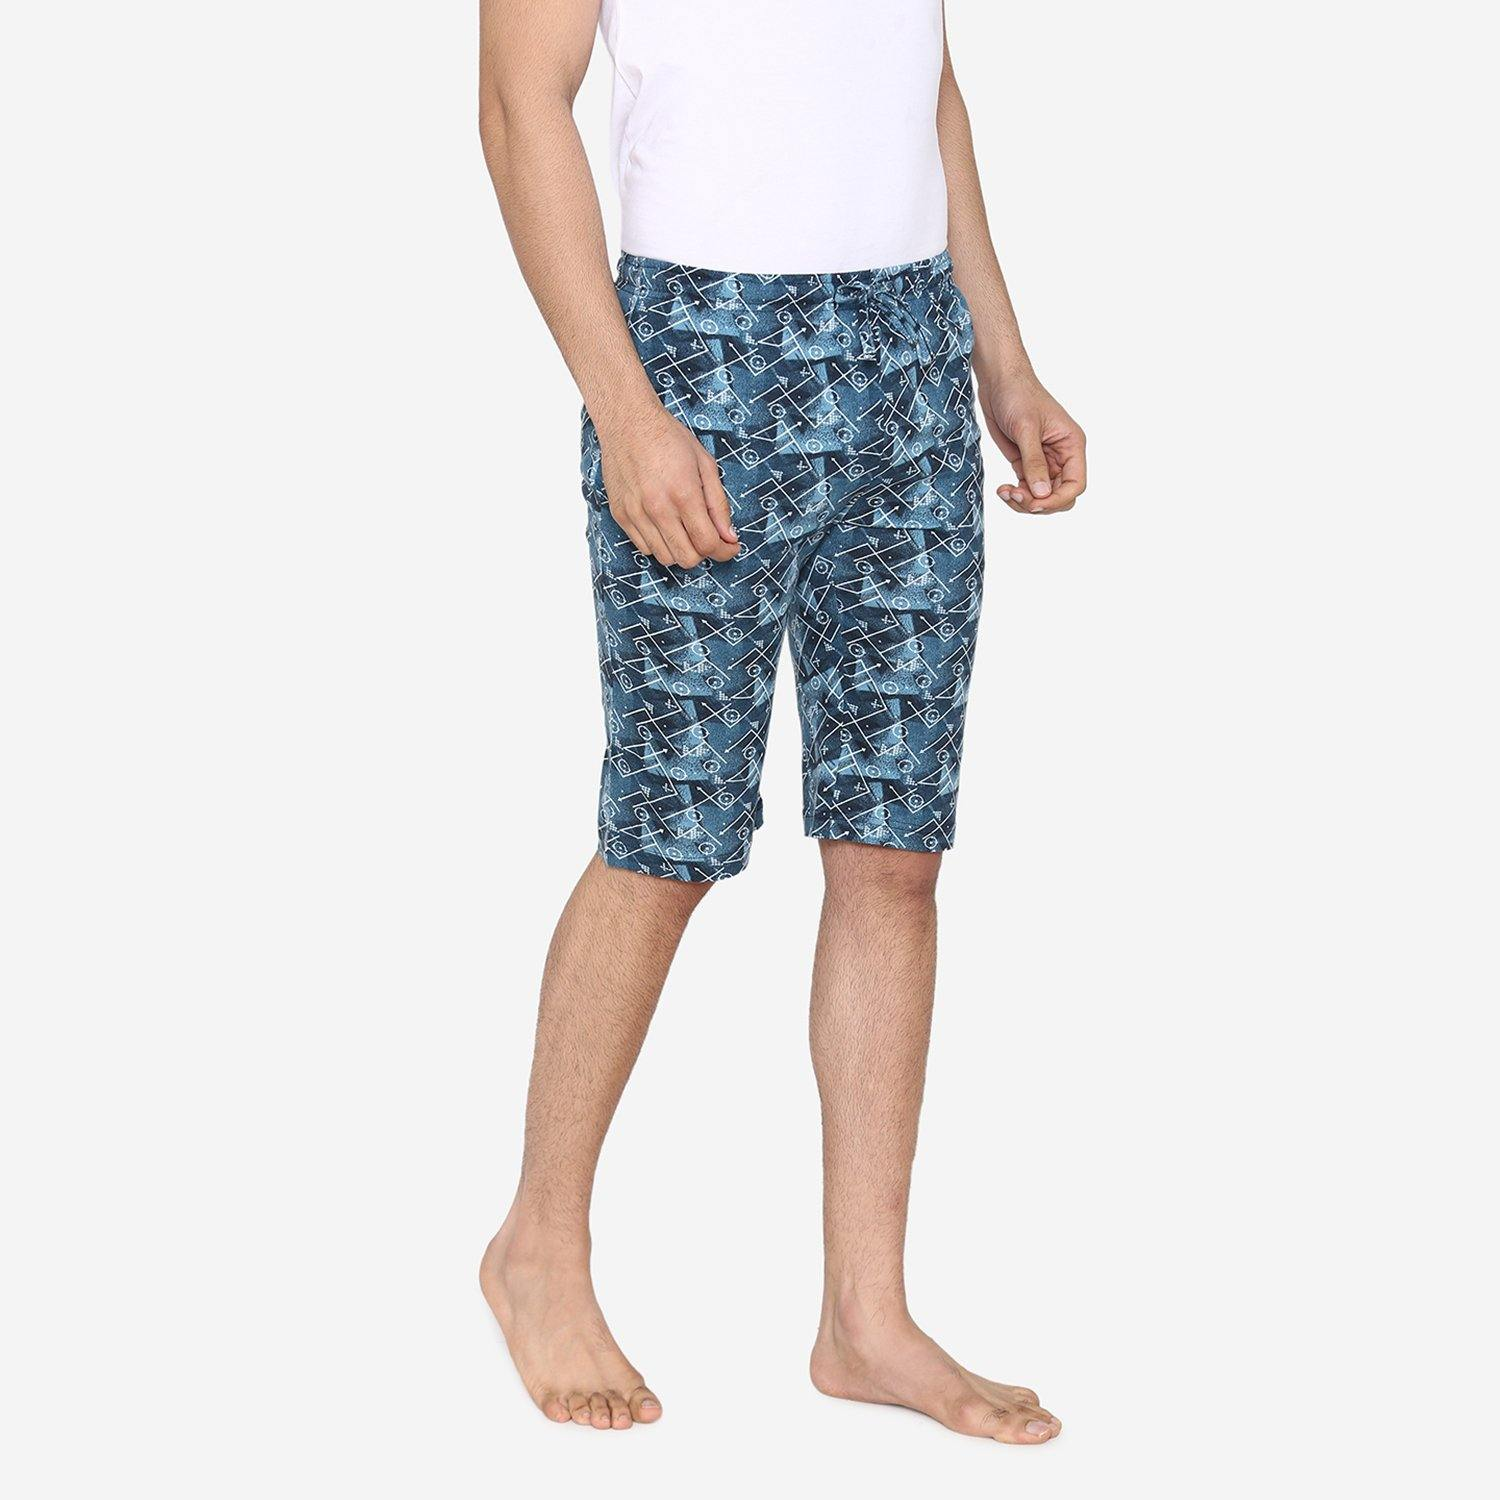 Men's Abstract Pattern Prints Comfy Shorts For Summer